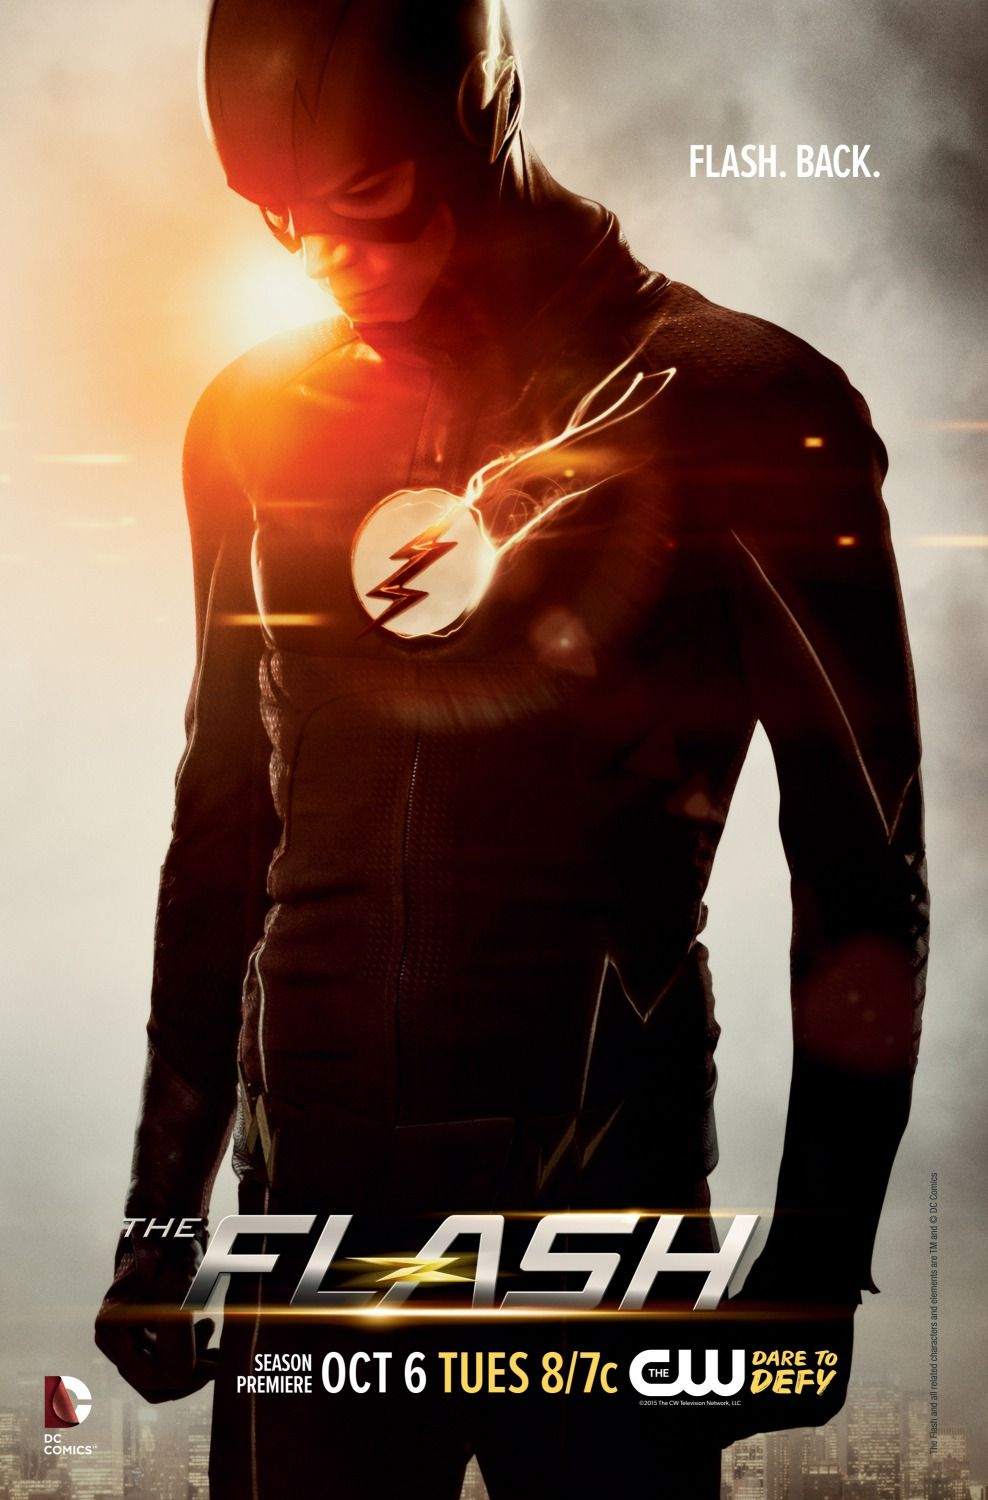 Flash movie covers